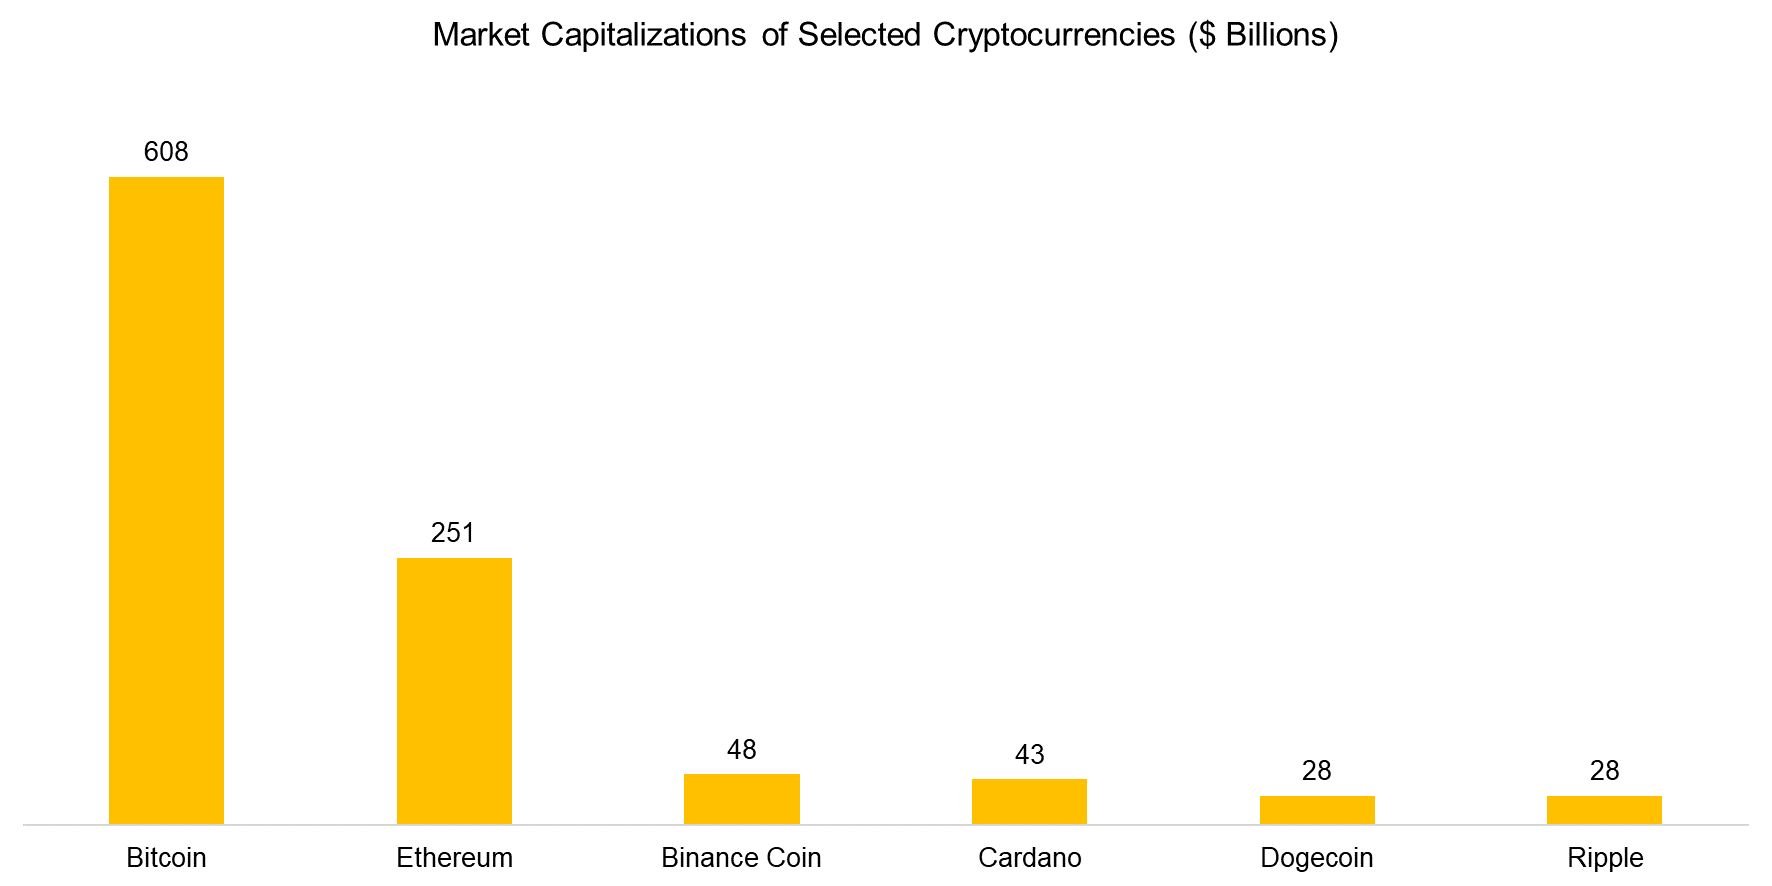 Market Capitalizations of Selected Cryptocurrencies ($ Billions)